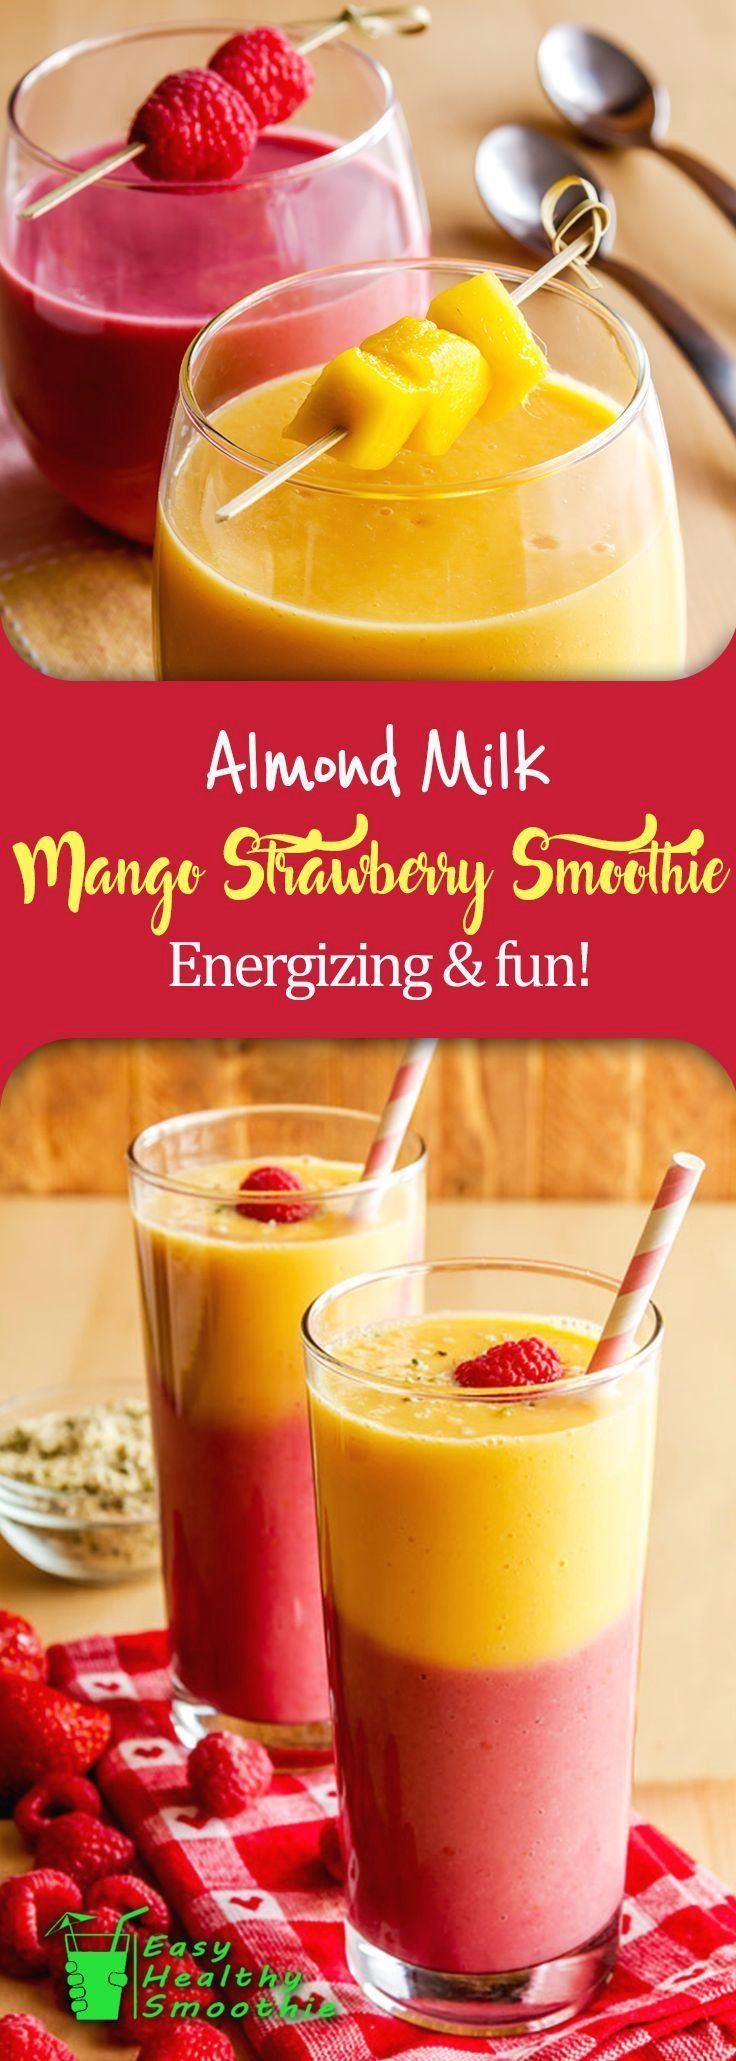 Pin on Coconut and Almond Water Milk Breakfast Smoothie ...